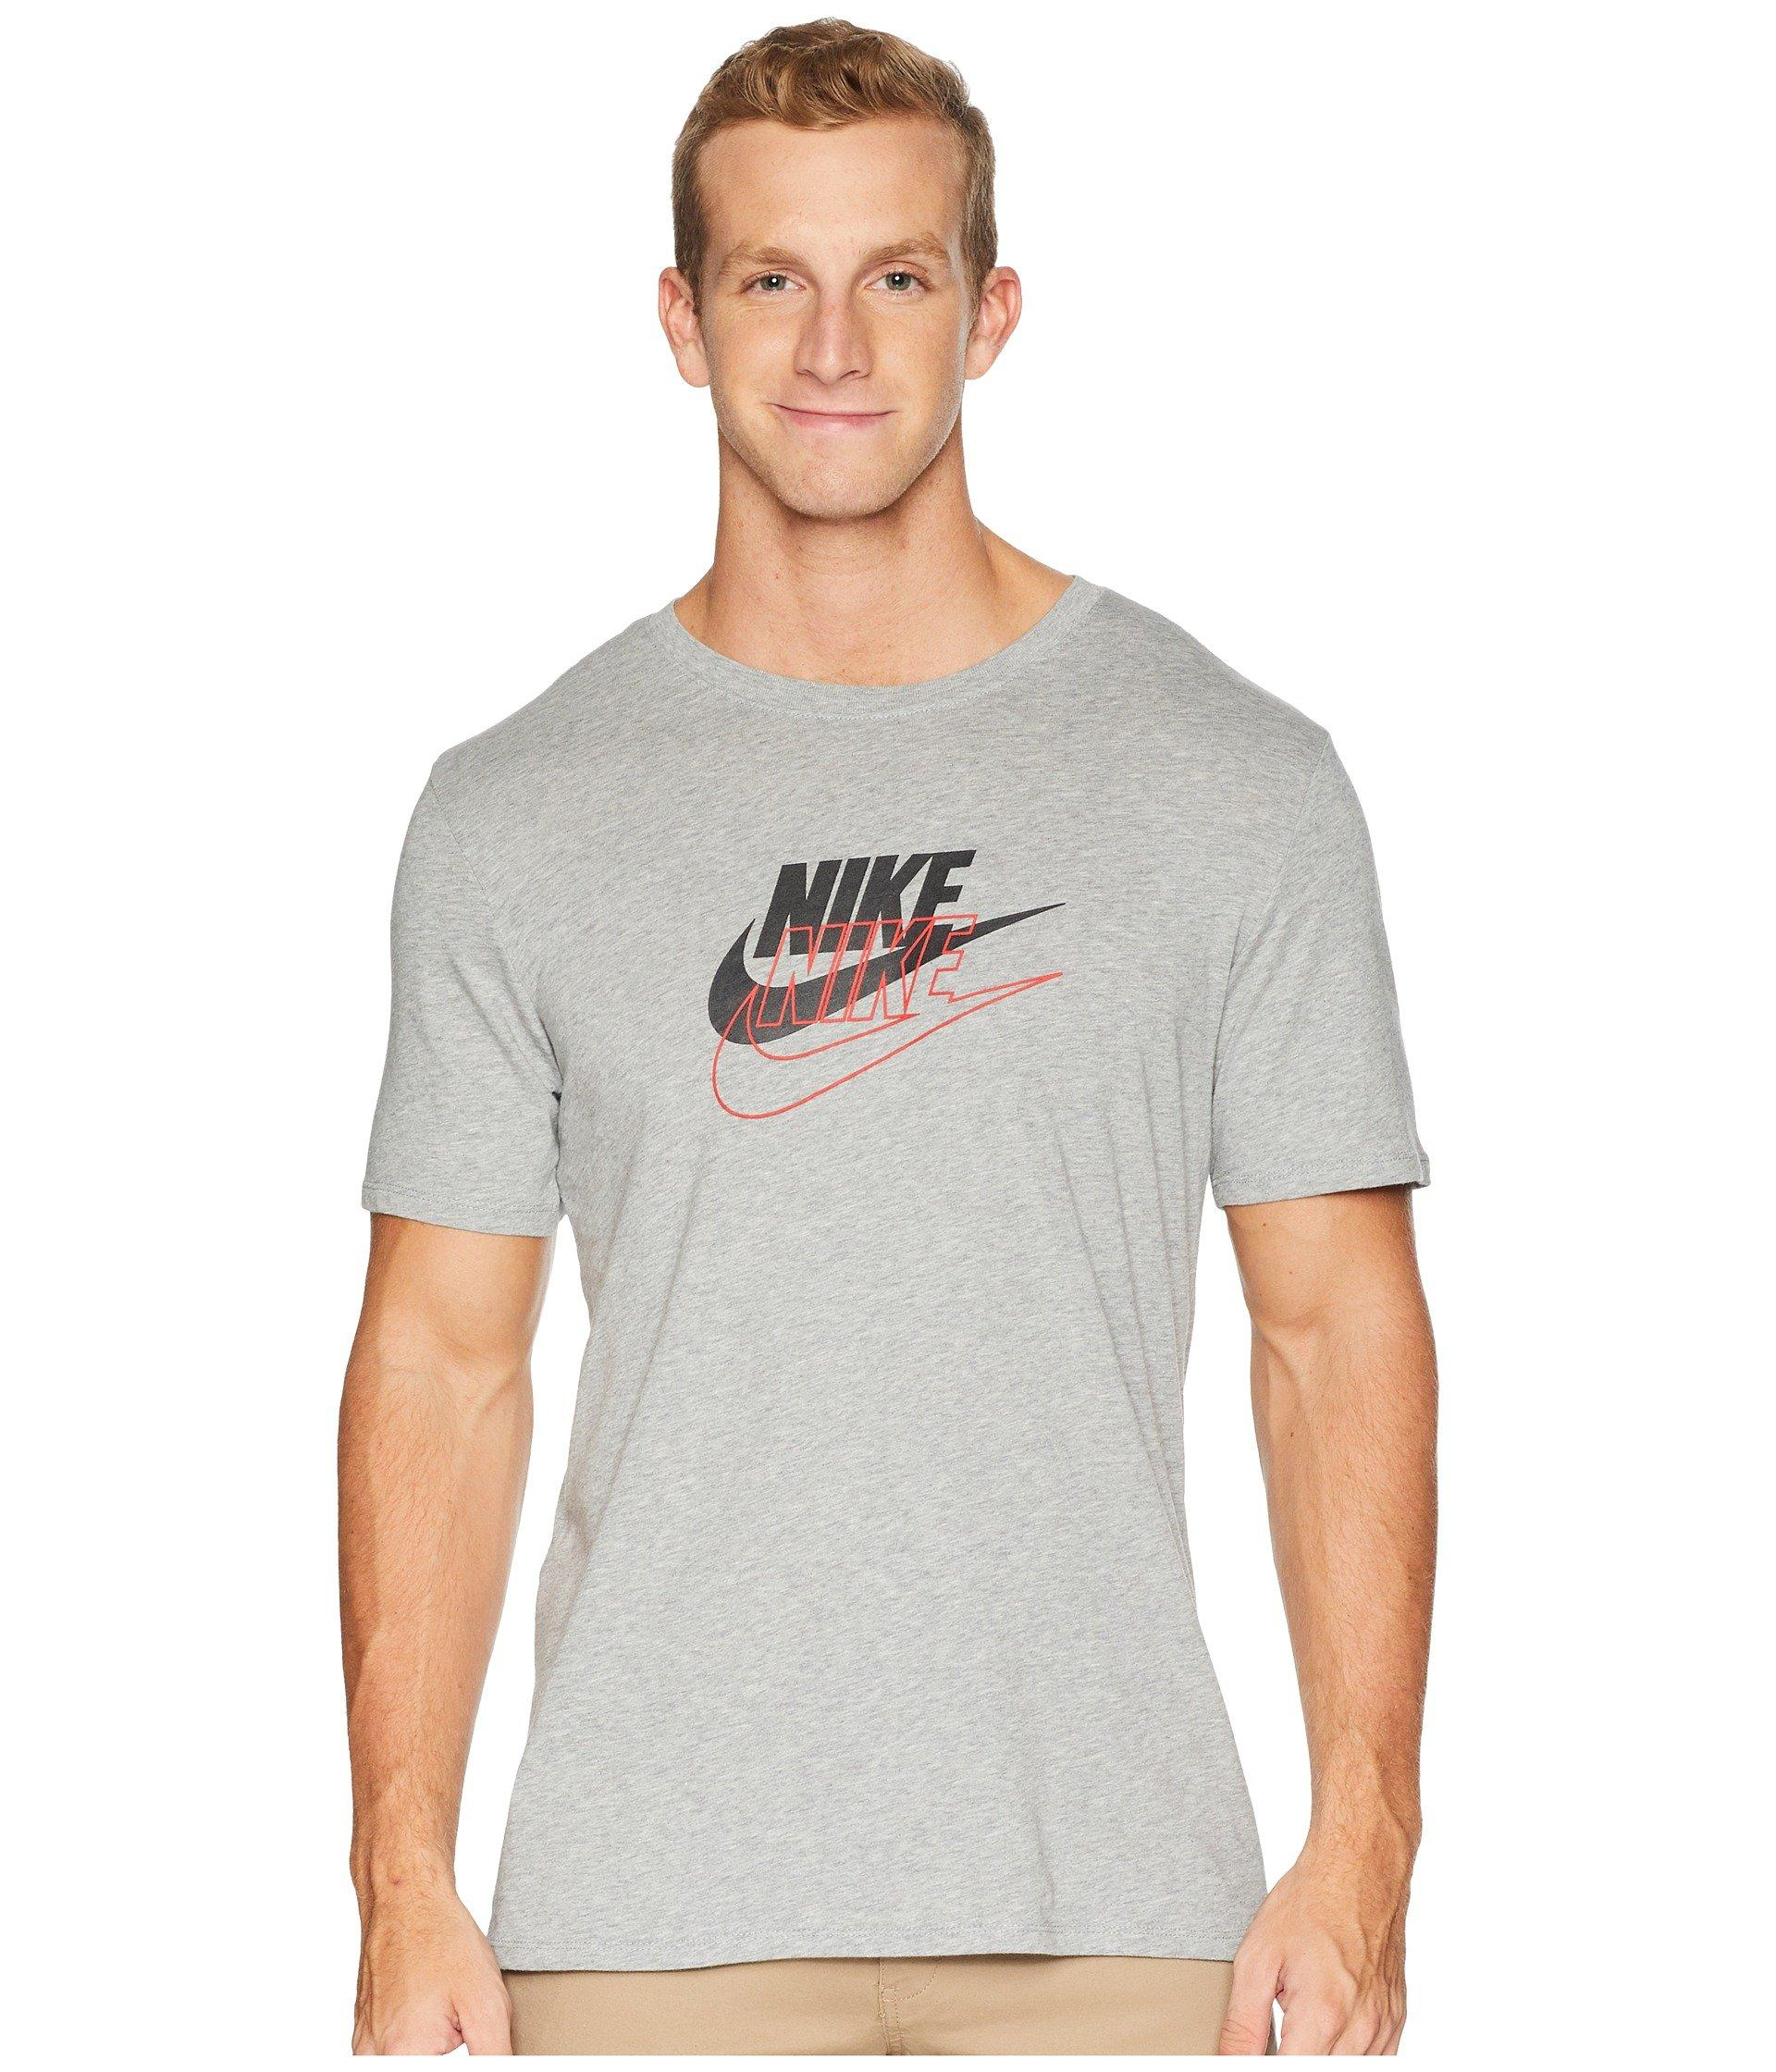 3e590733 Lyst - Nike Archive 3 Tee in Gray for Men - Save 21.05263157894737%